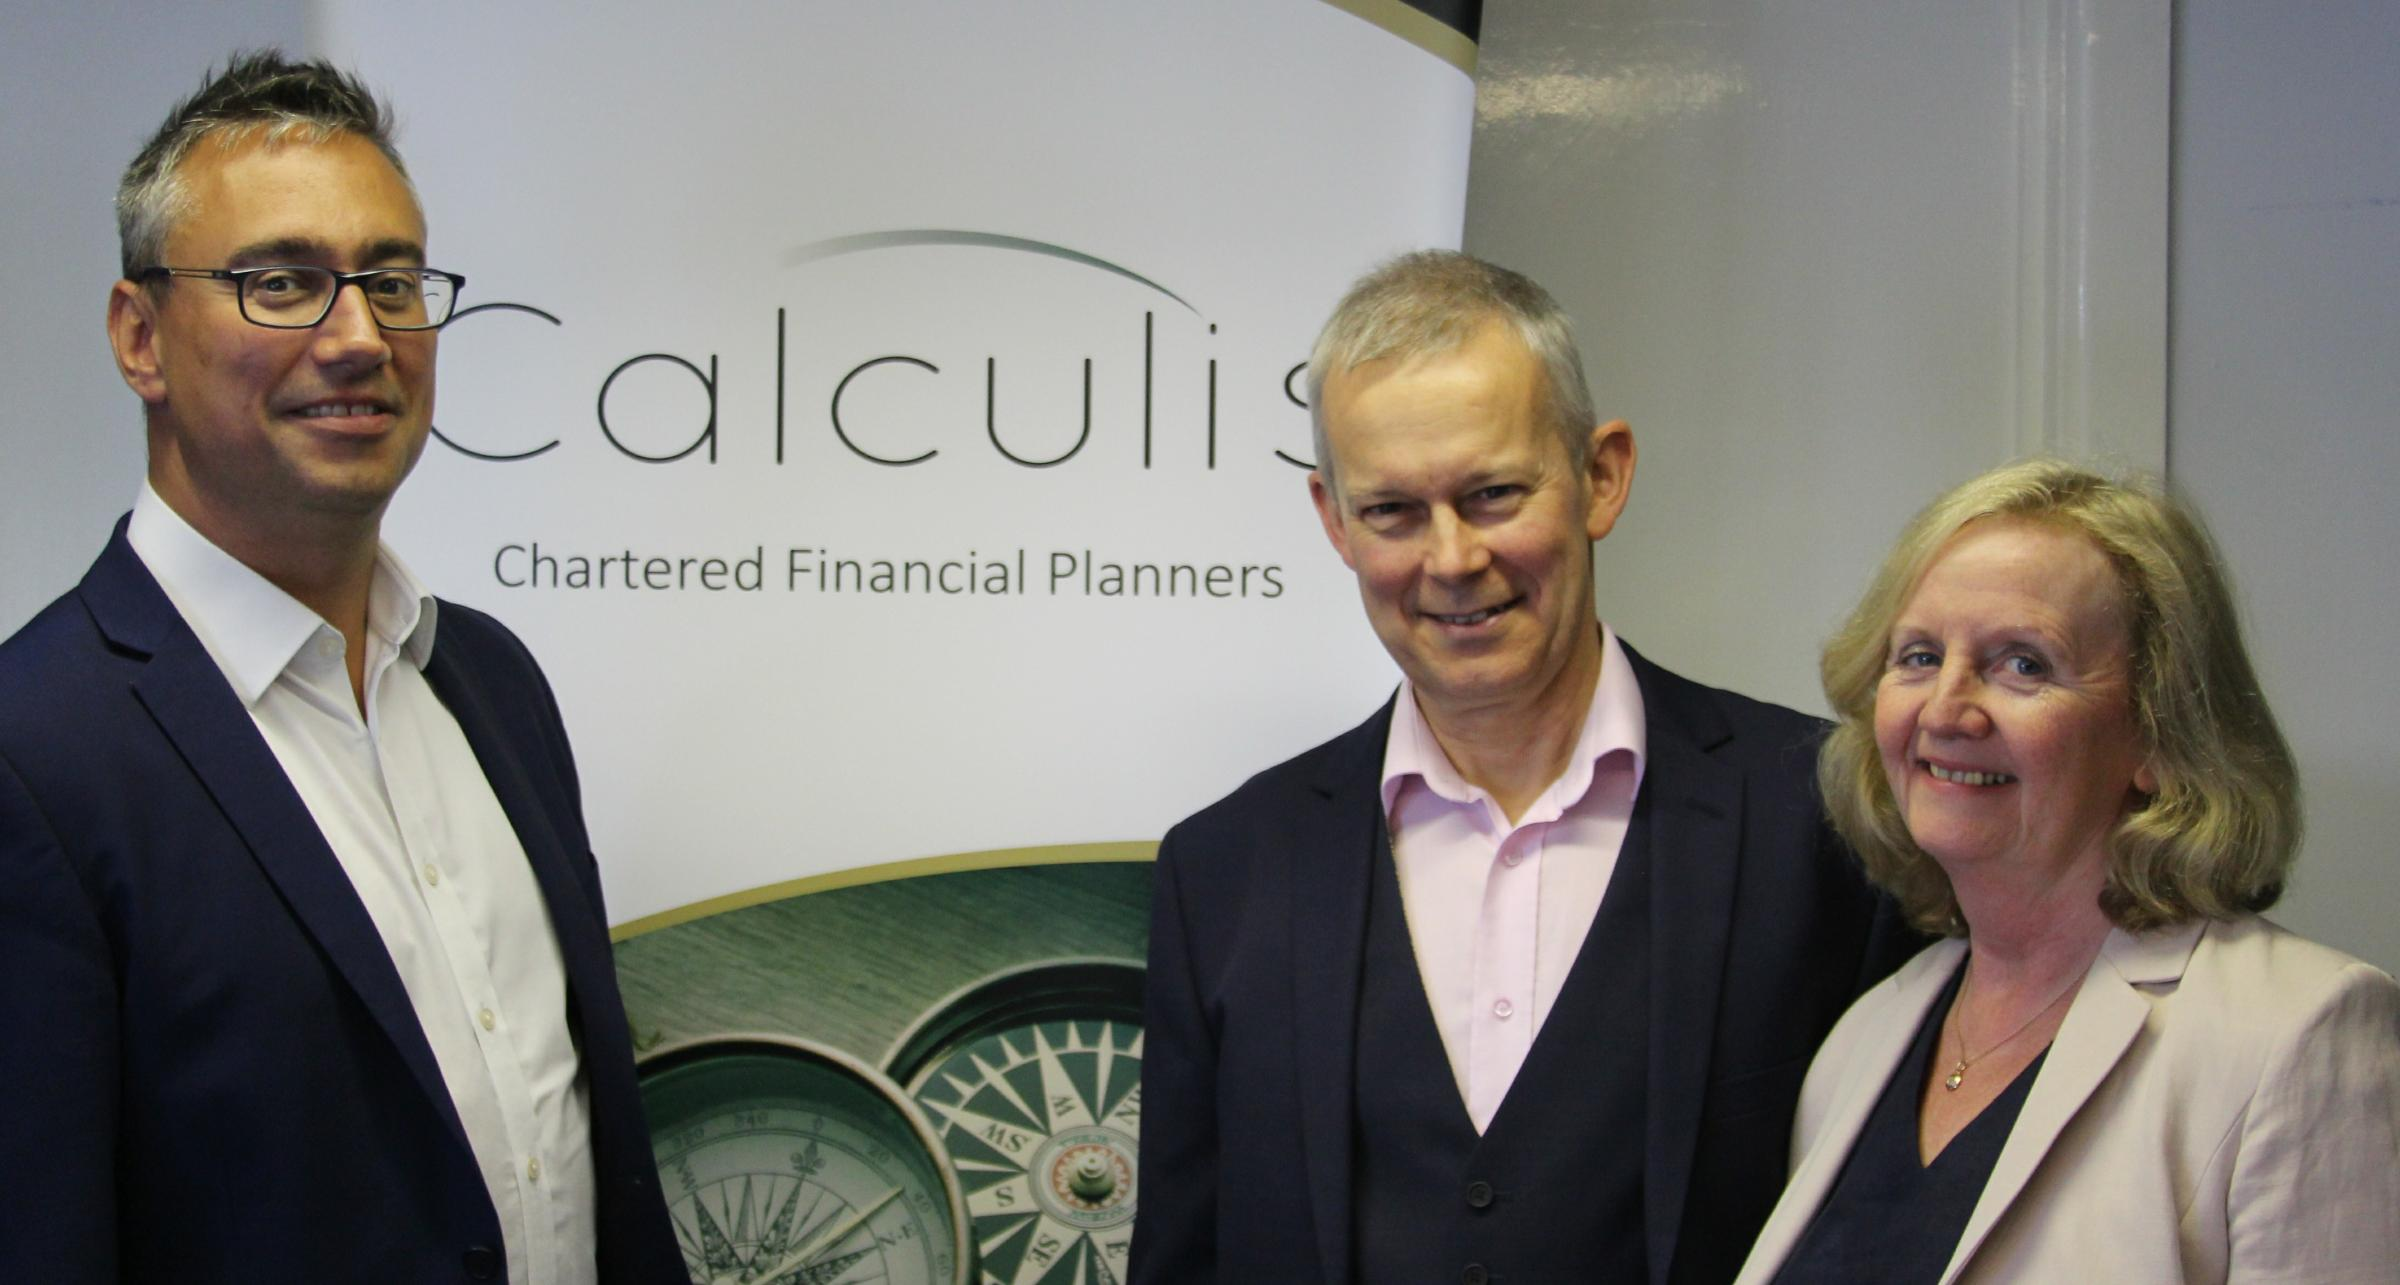 Stu and Miriam Marchant, festival directors of music, with Alex Pegley from Calculis Financial Planners